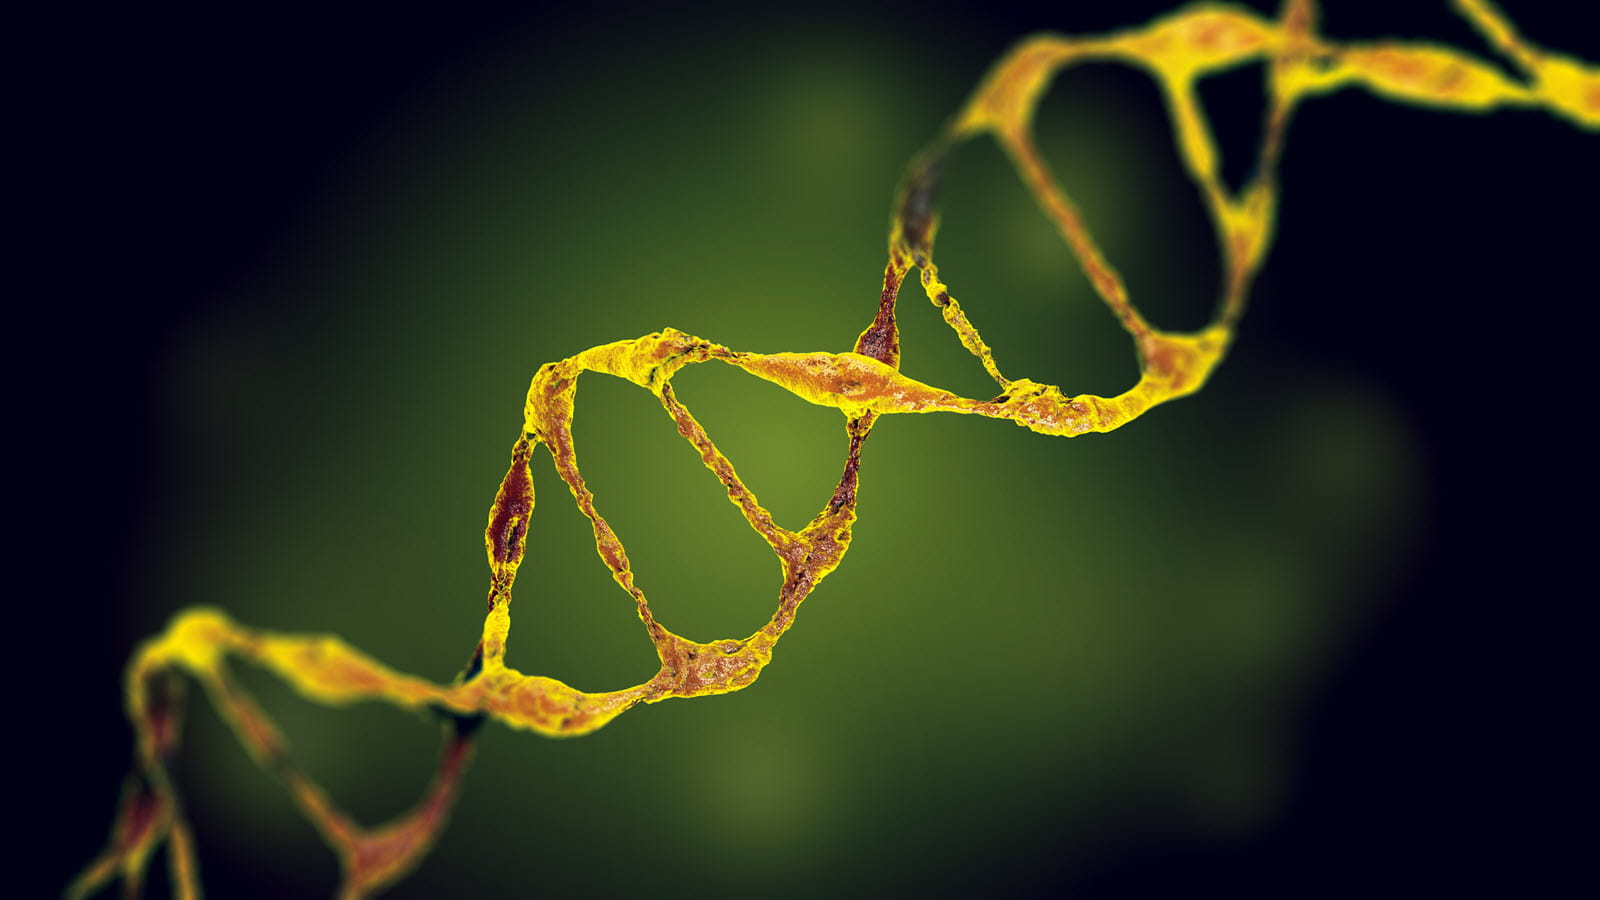 yellow dna strand